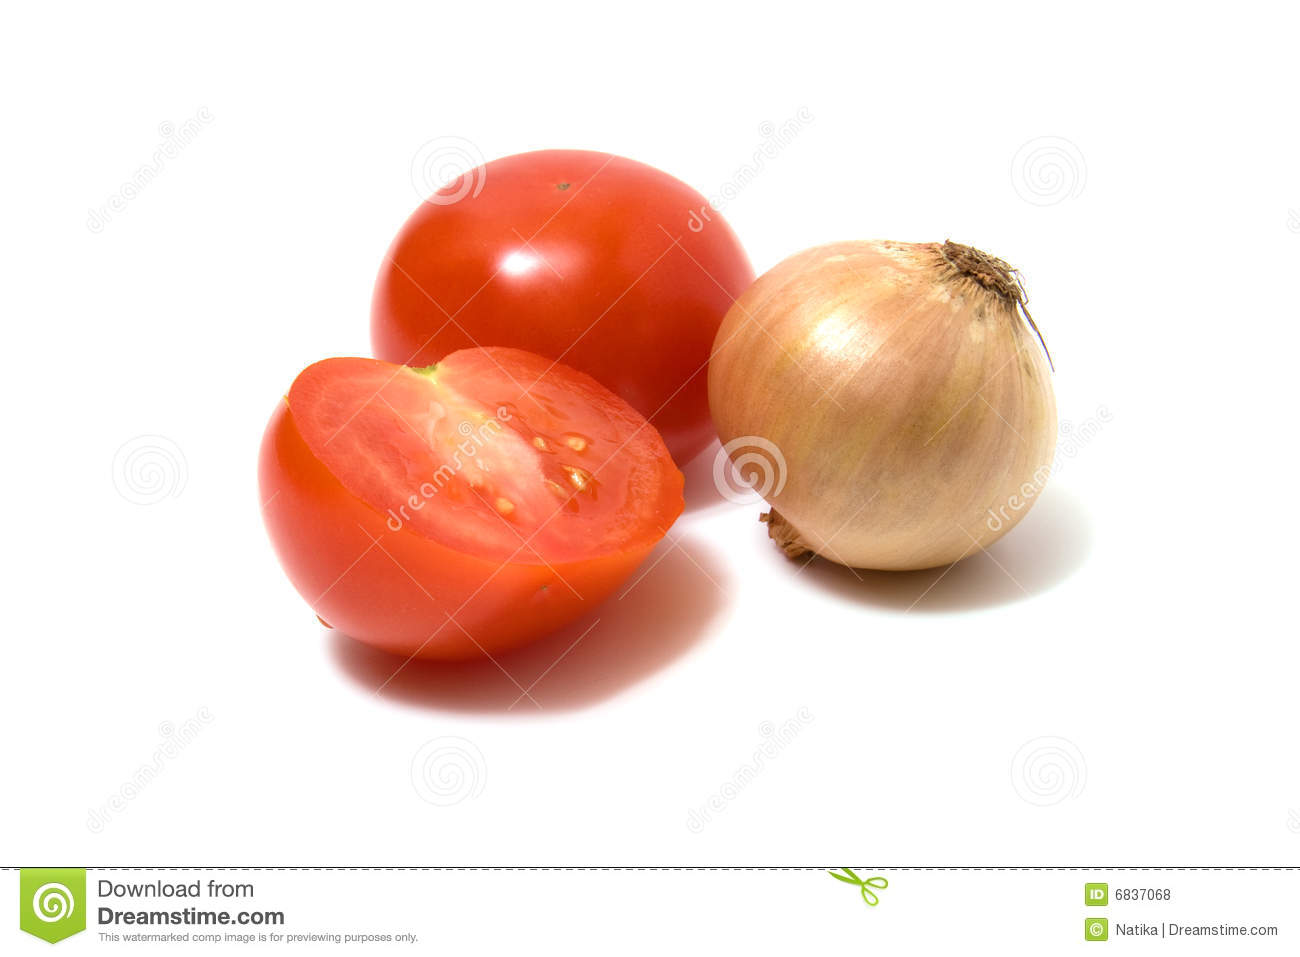 Download Tomato And Onion Isolated On White Stock Photo - Image of piece, vegetal: 6837068